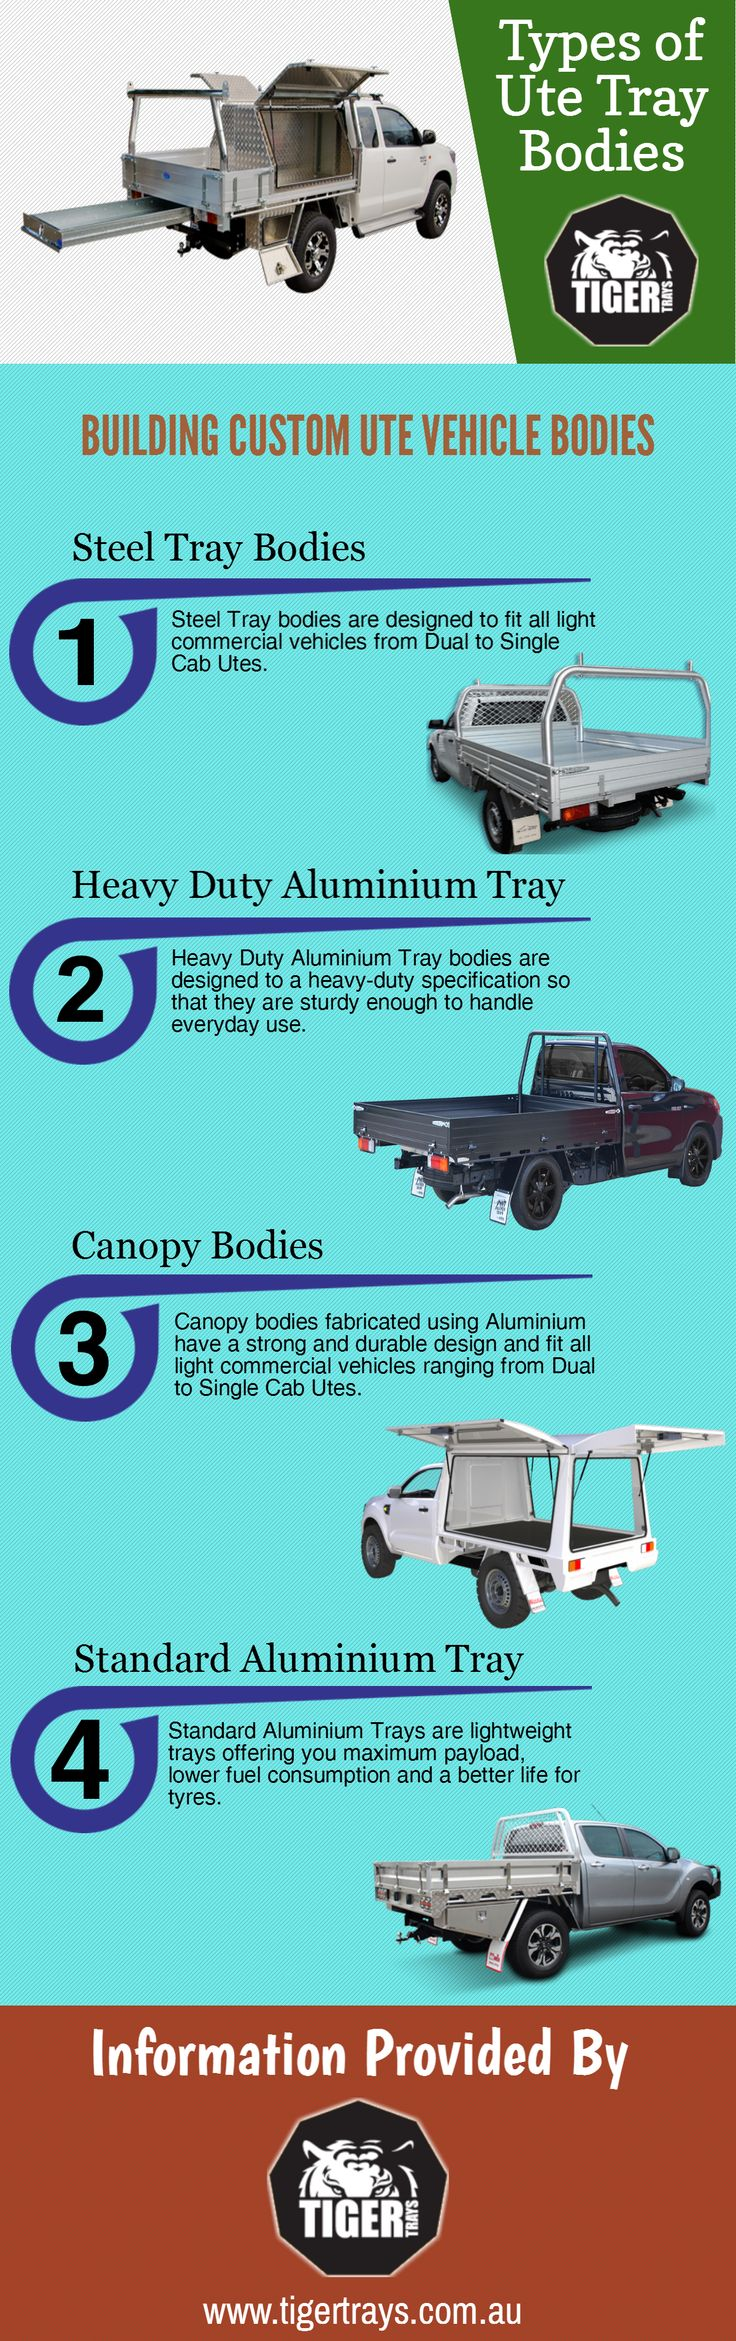 Ute Tray bodies are available in different sizes and contours to suit all vehicles. They can be constructed with steel or aluminium depending on the nature of usage. Avail information regarding different ute tray bodies through this infographic.